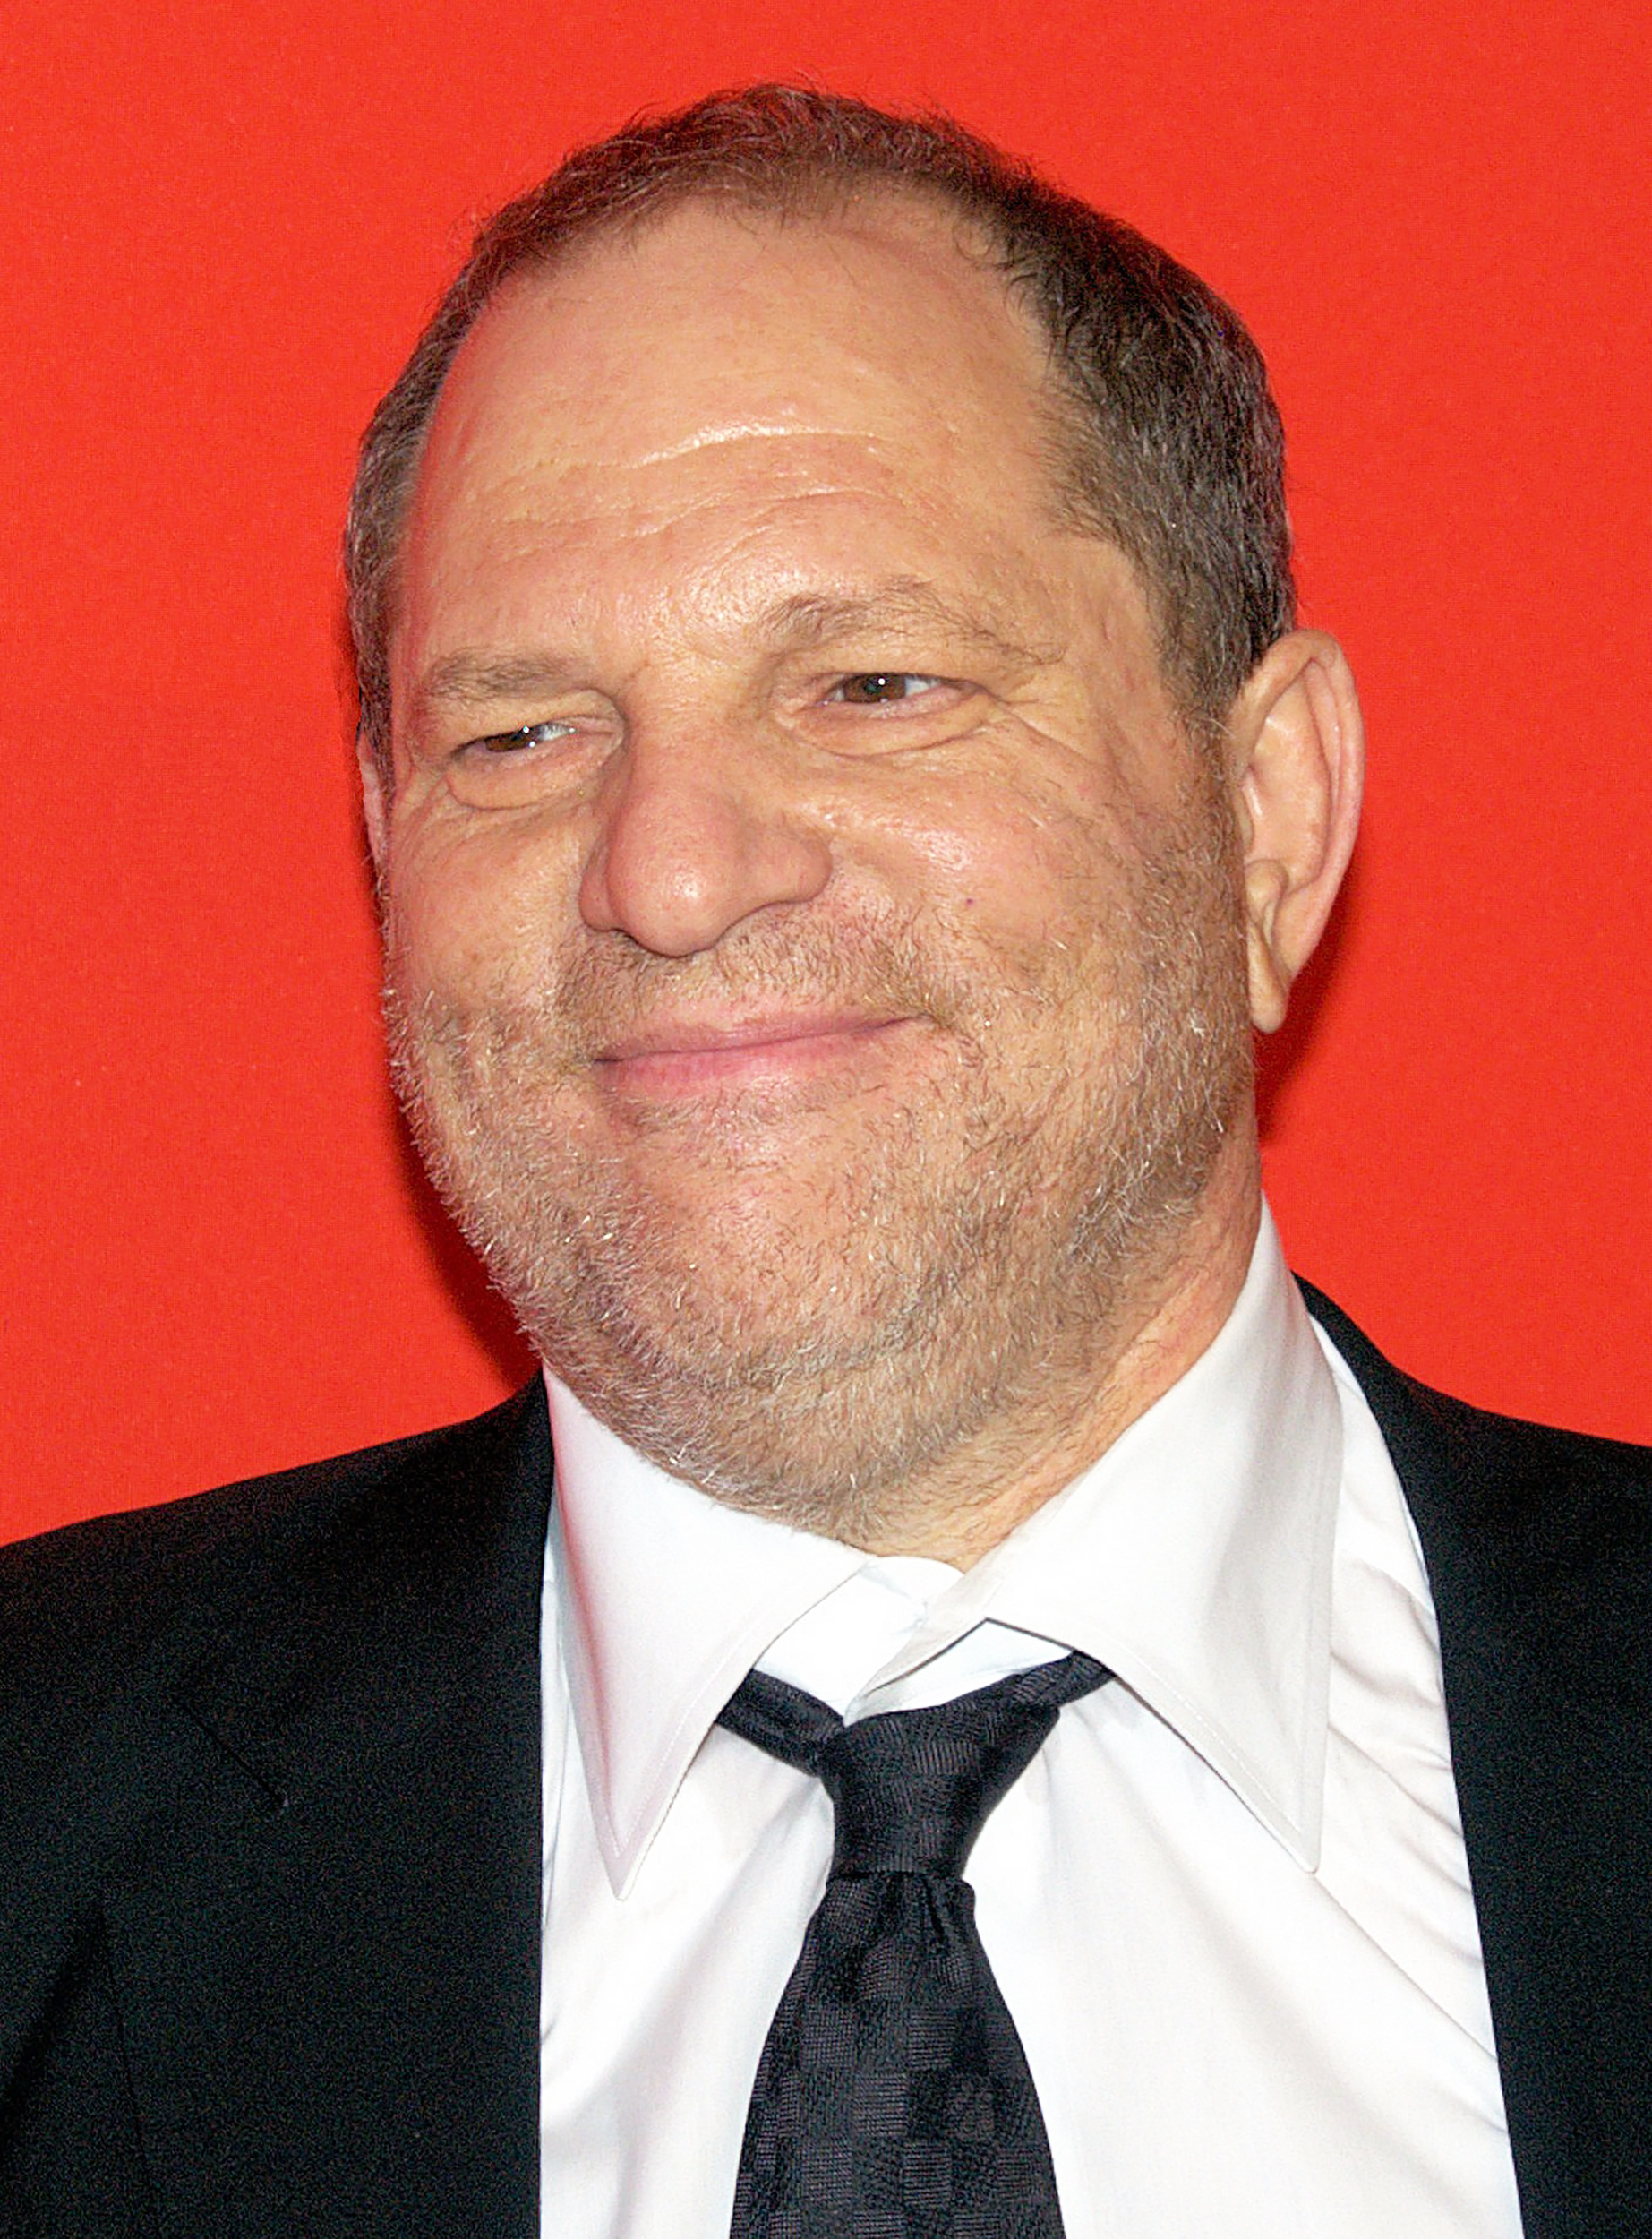 Ex-film producer Harvey Weinstein (pictured above) has been accused of sexual misconduct by several women. Themes of the film Pulp Fiction, produced by Weinstein, denounce Weinstein's attitude (courtesy of Creative Commons).